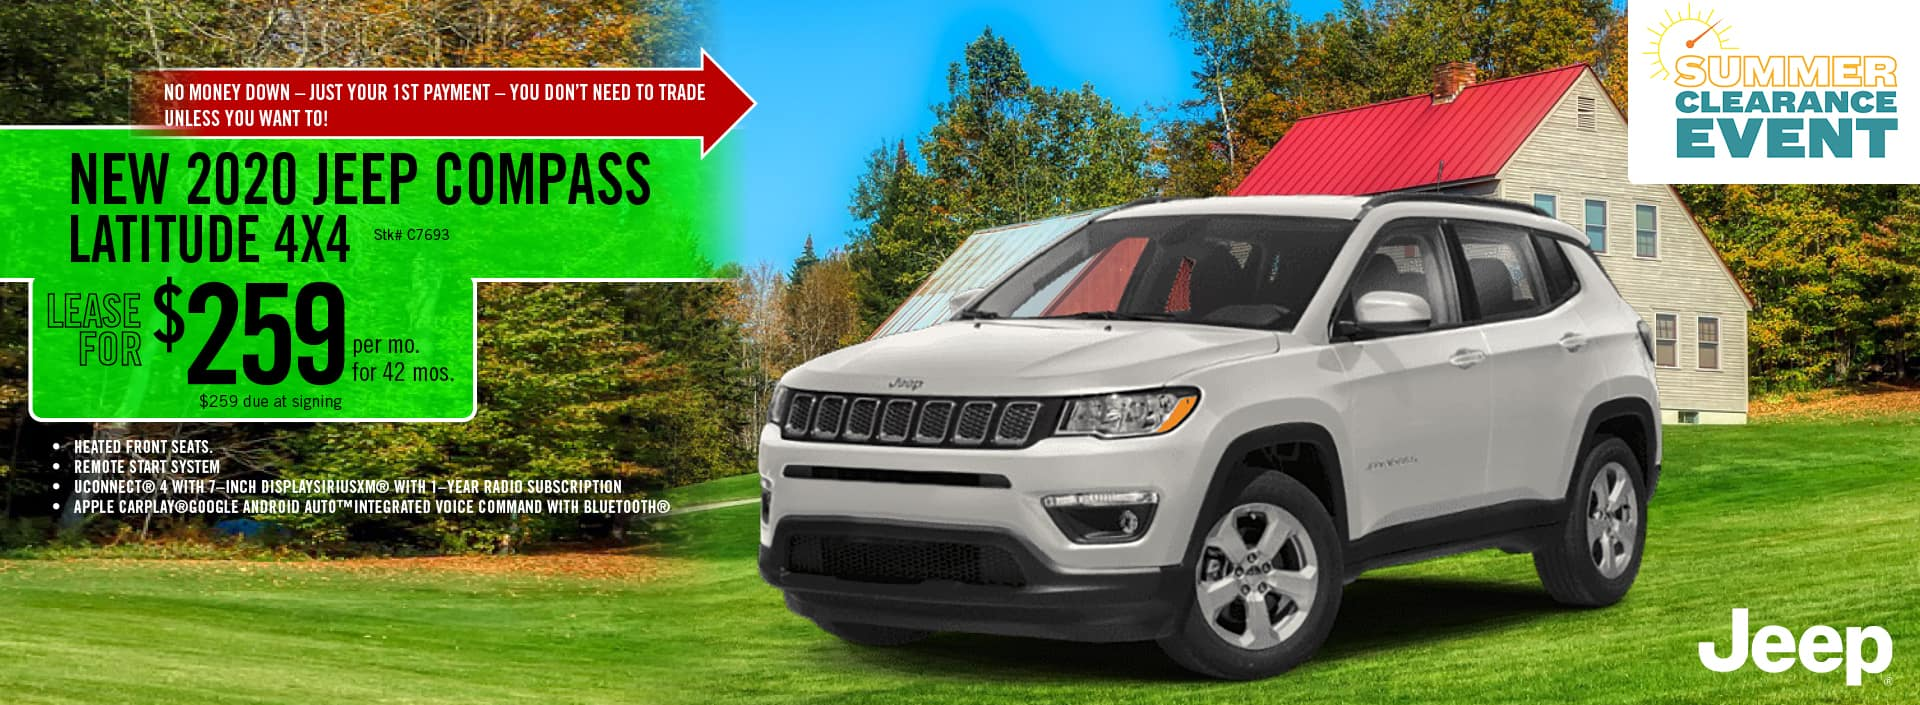 2020 Jeep Compass lease deal $259 for 42 months | Barre, VT